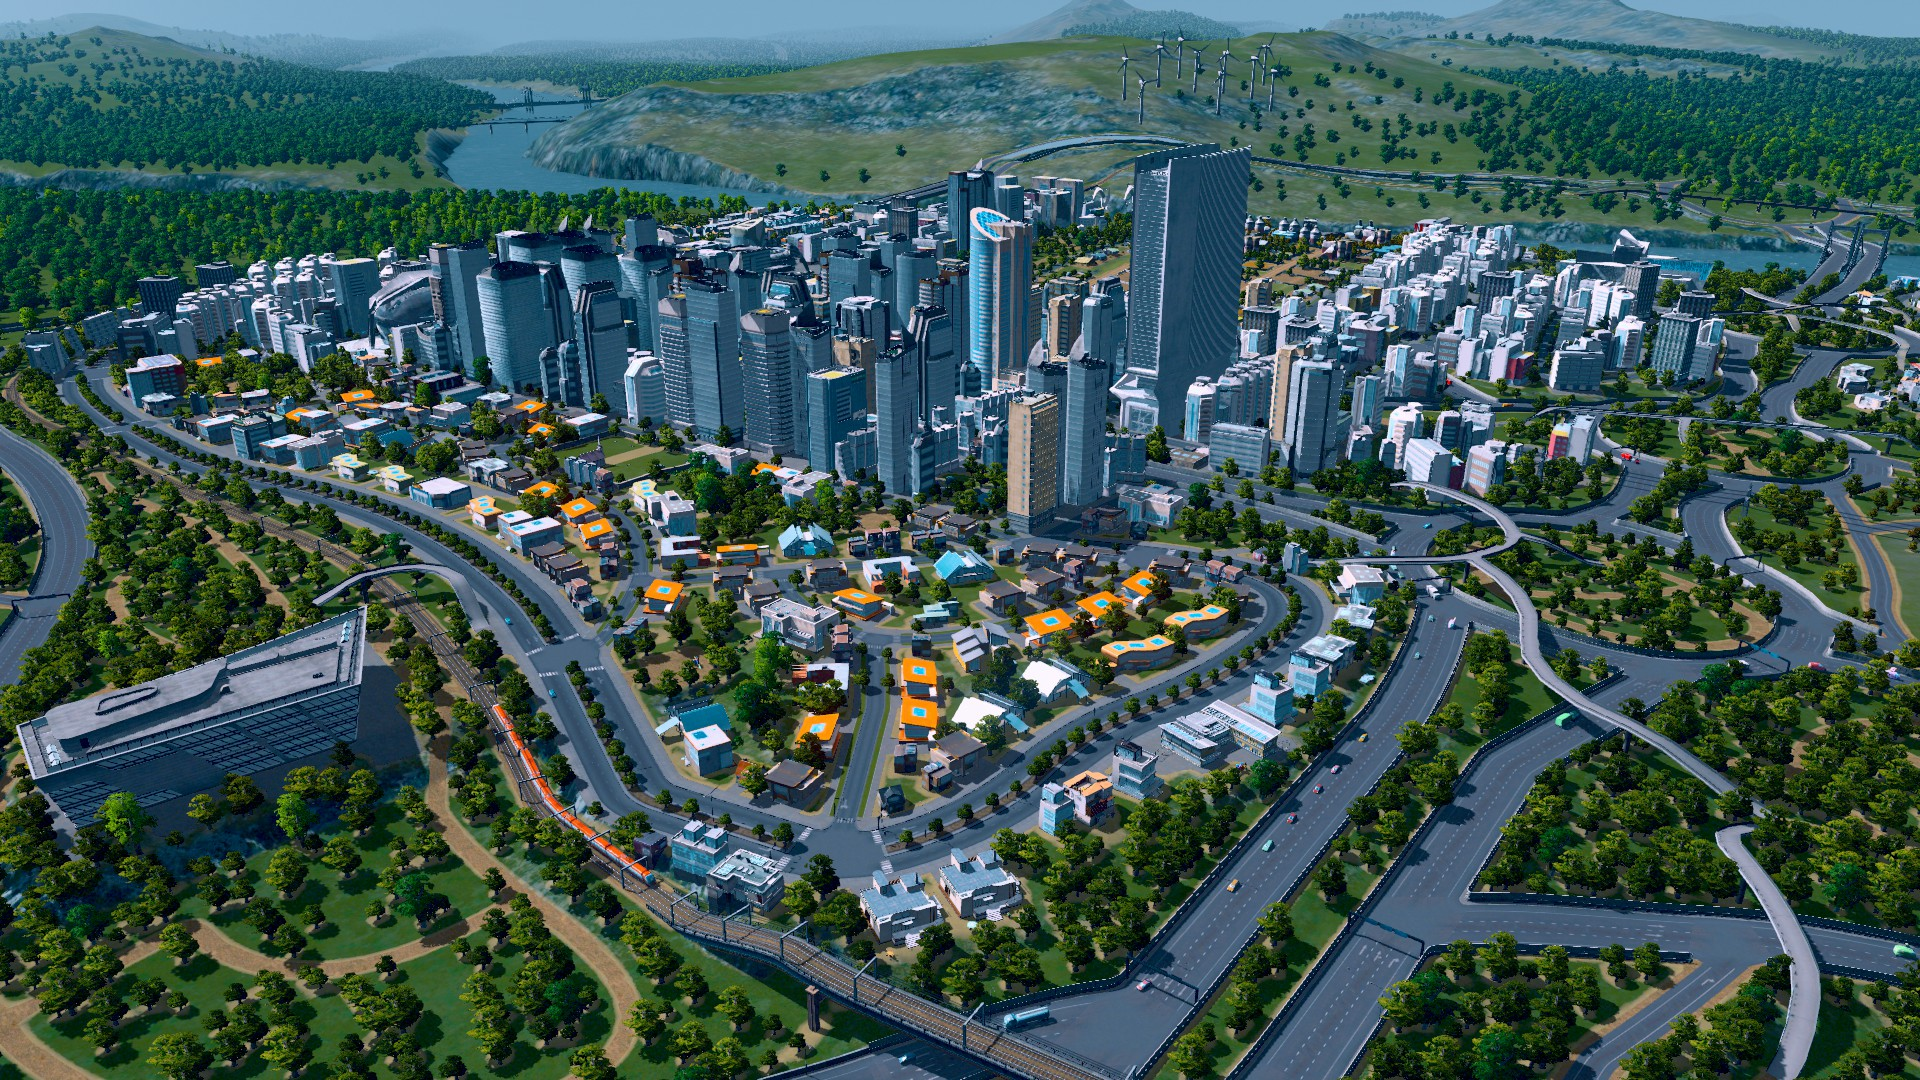 download cities skylines deluxe edition-codex cracked full version singlelink iso rar multi 8 language free for pc